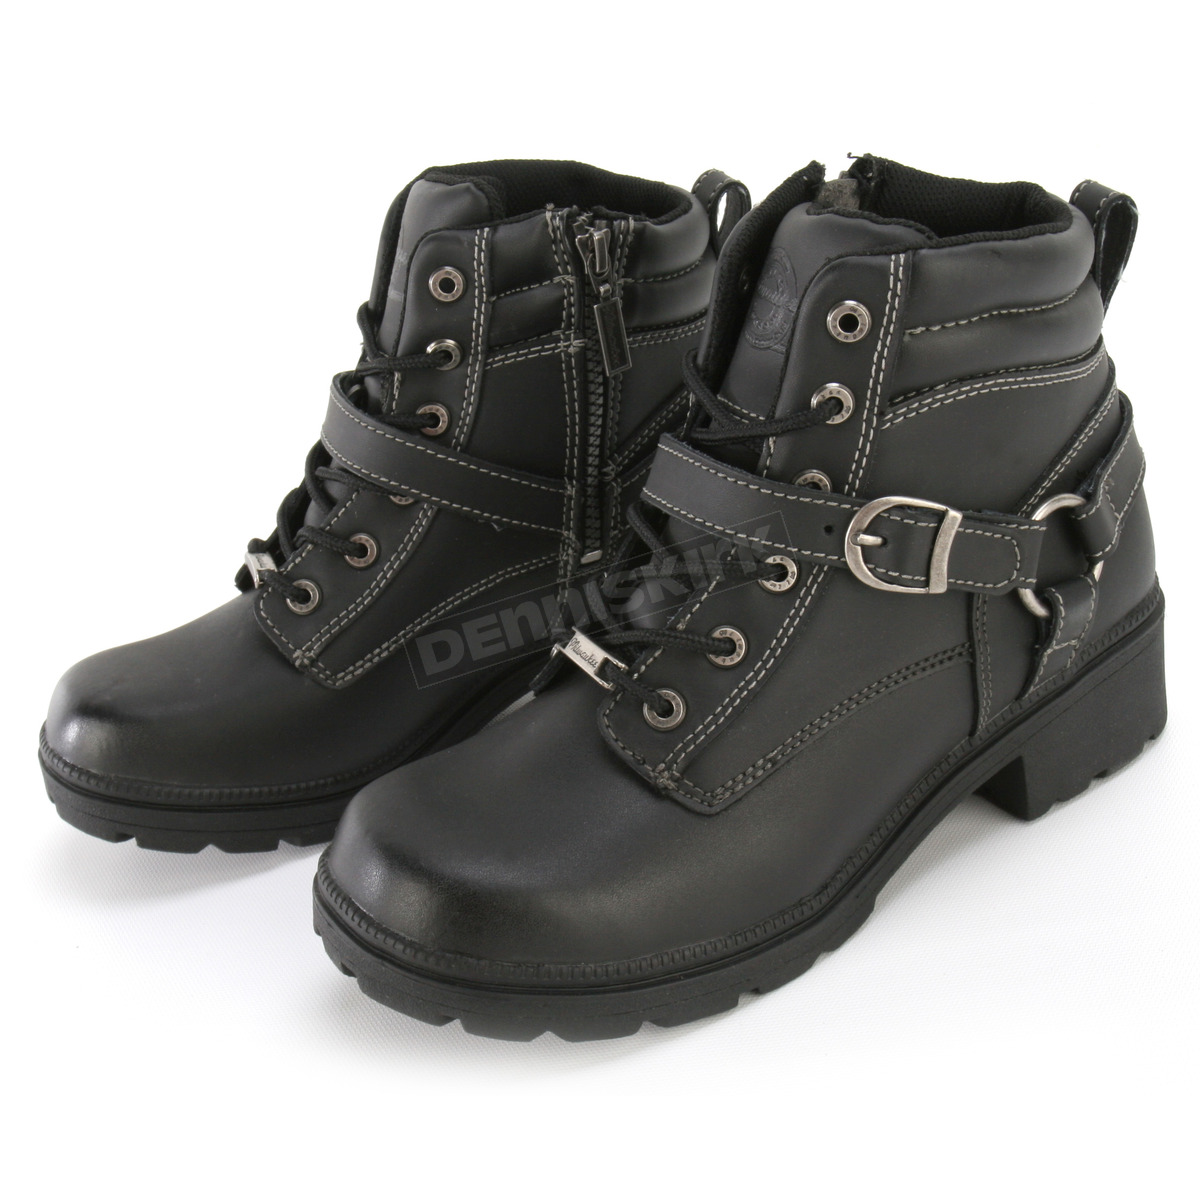 Black, Size 6 Milwaukee Motorcycle Clothing Company Womens Paragon Boots